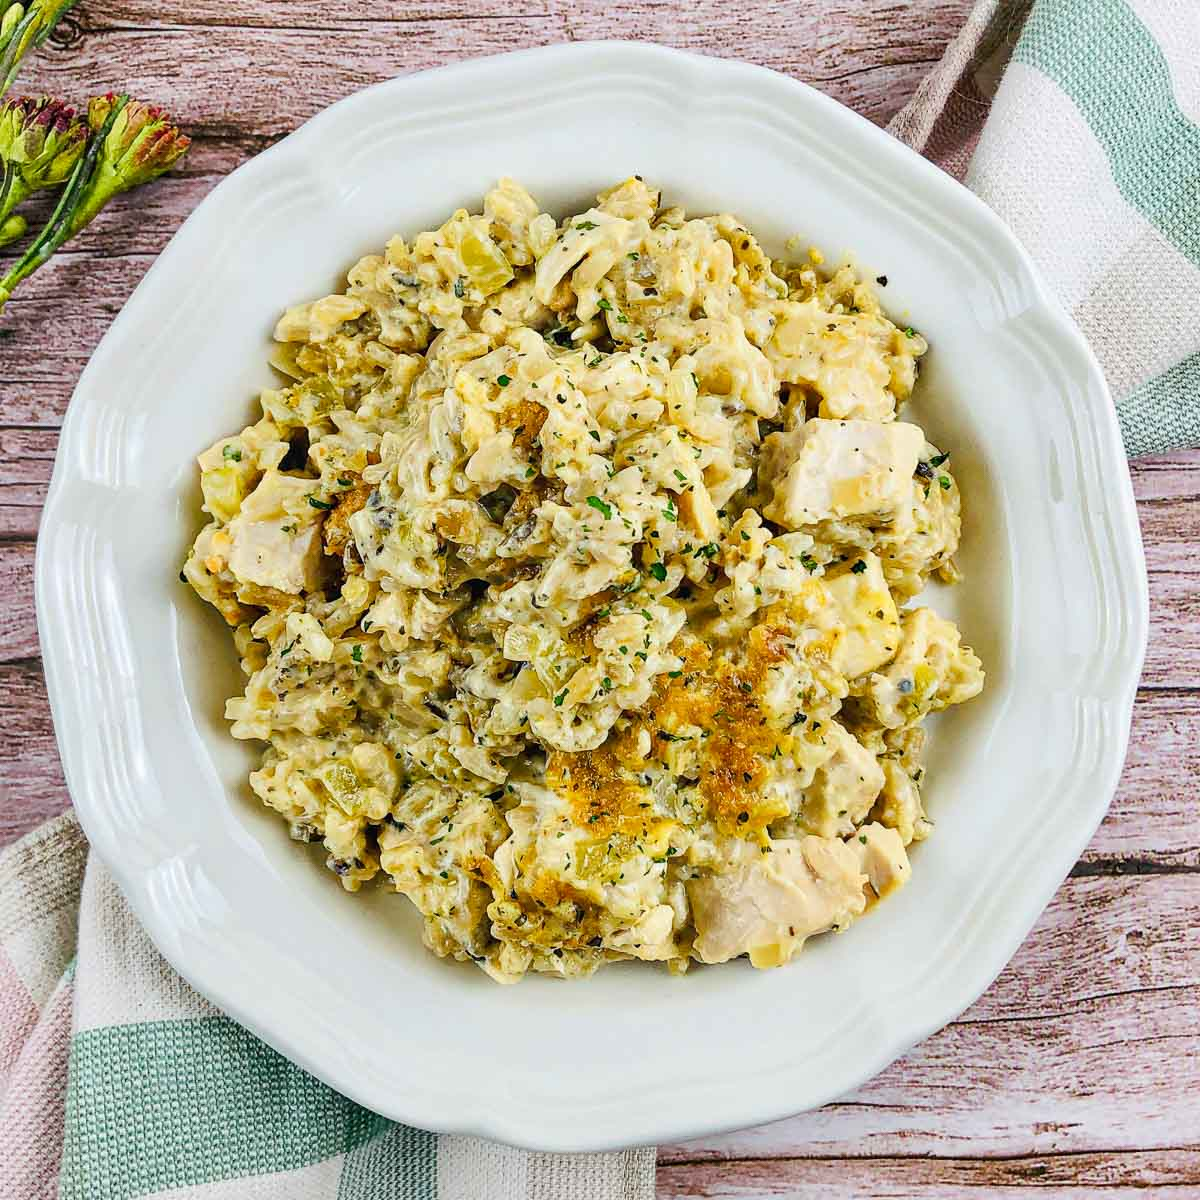 Chicken and wild rice casserole on a plate.